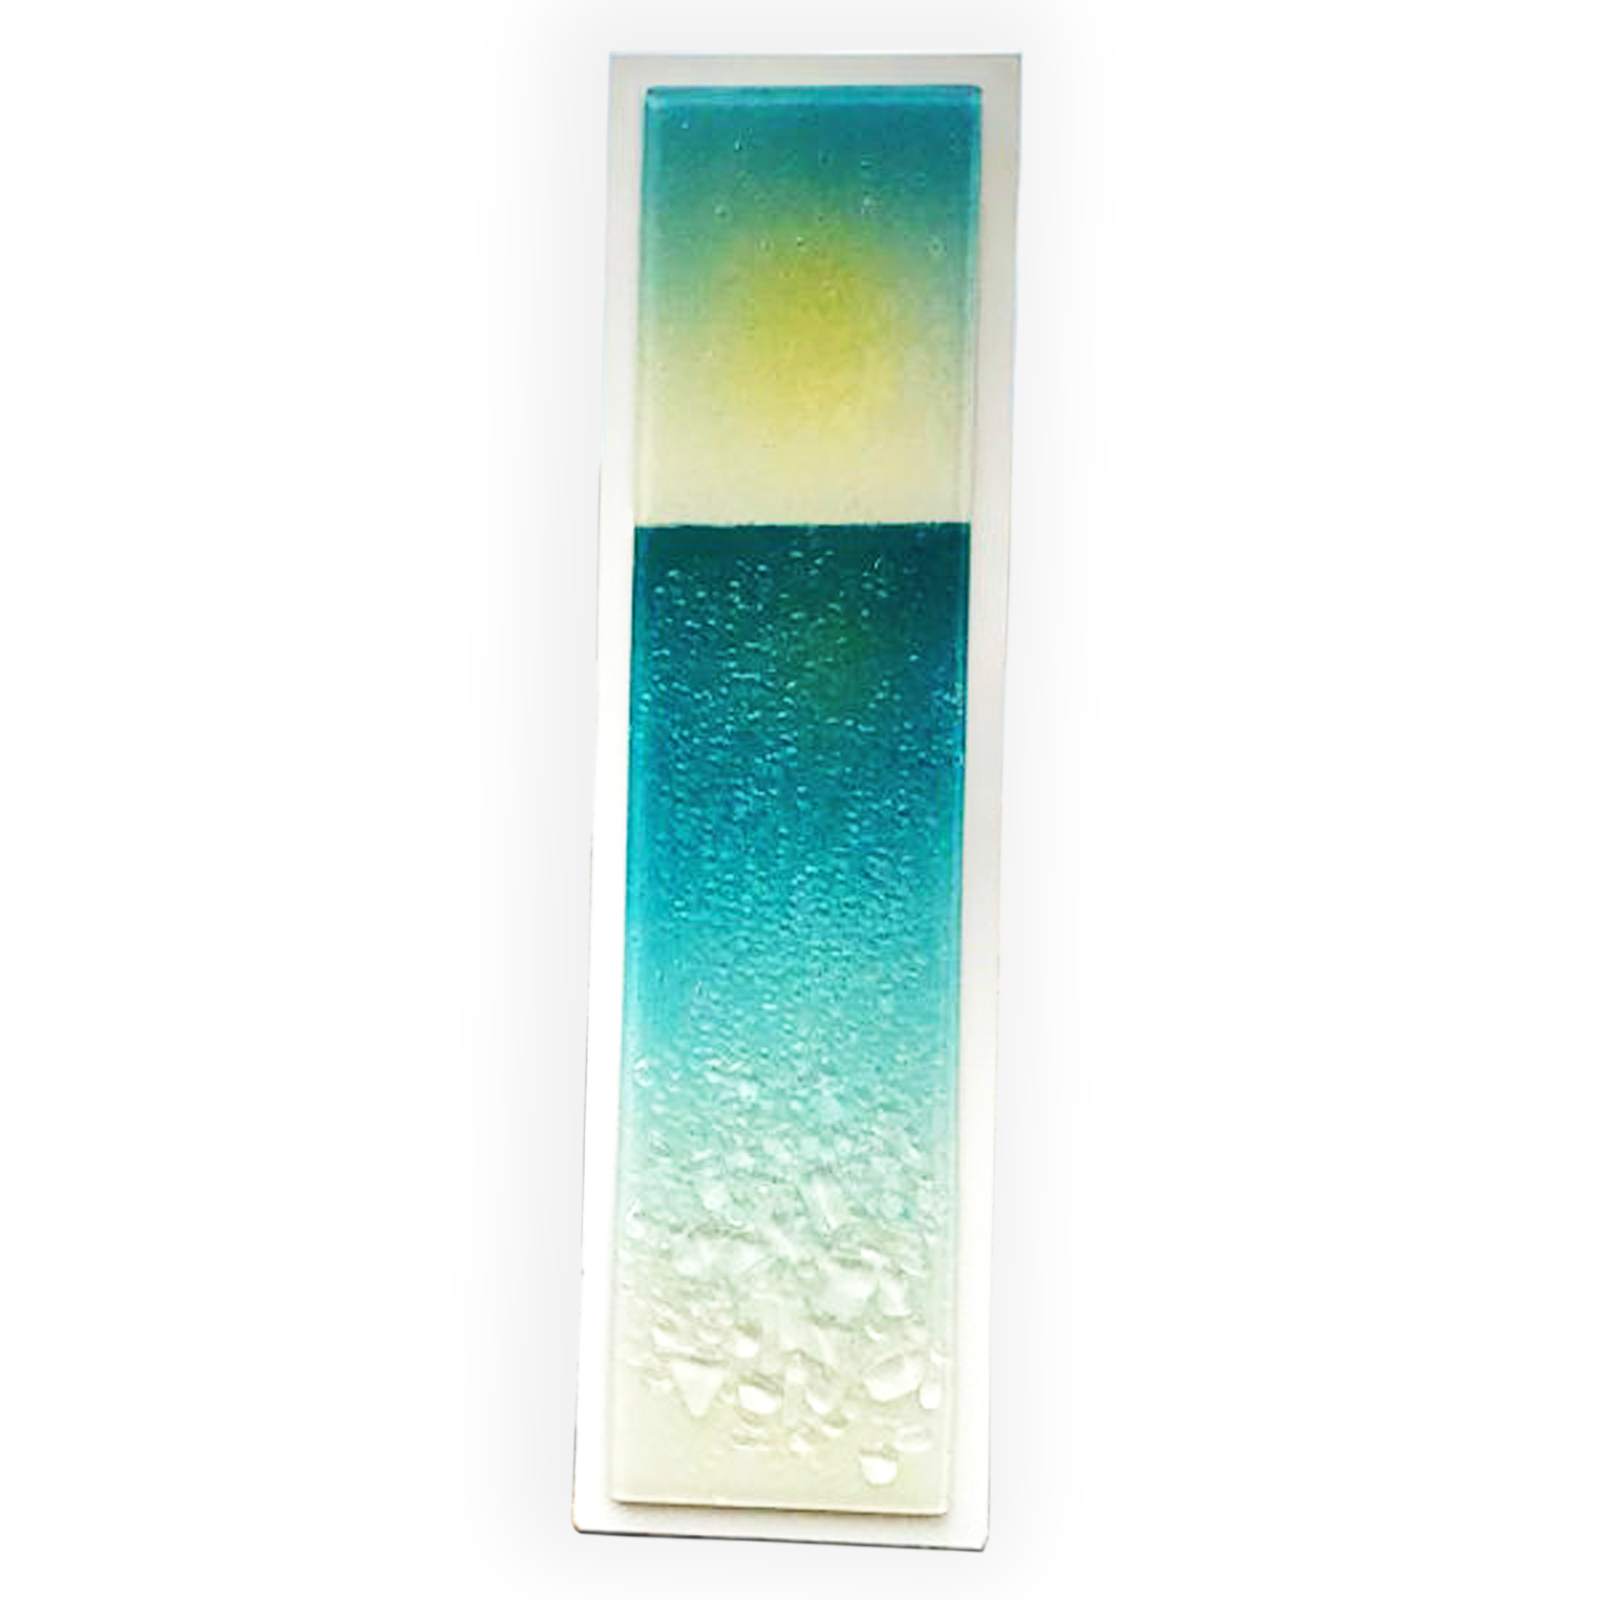 On the Beach Wall Art Panel by Berserks Glass